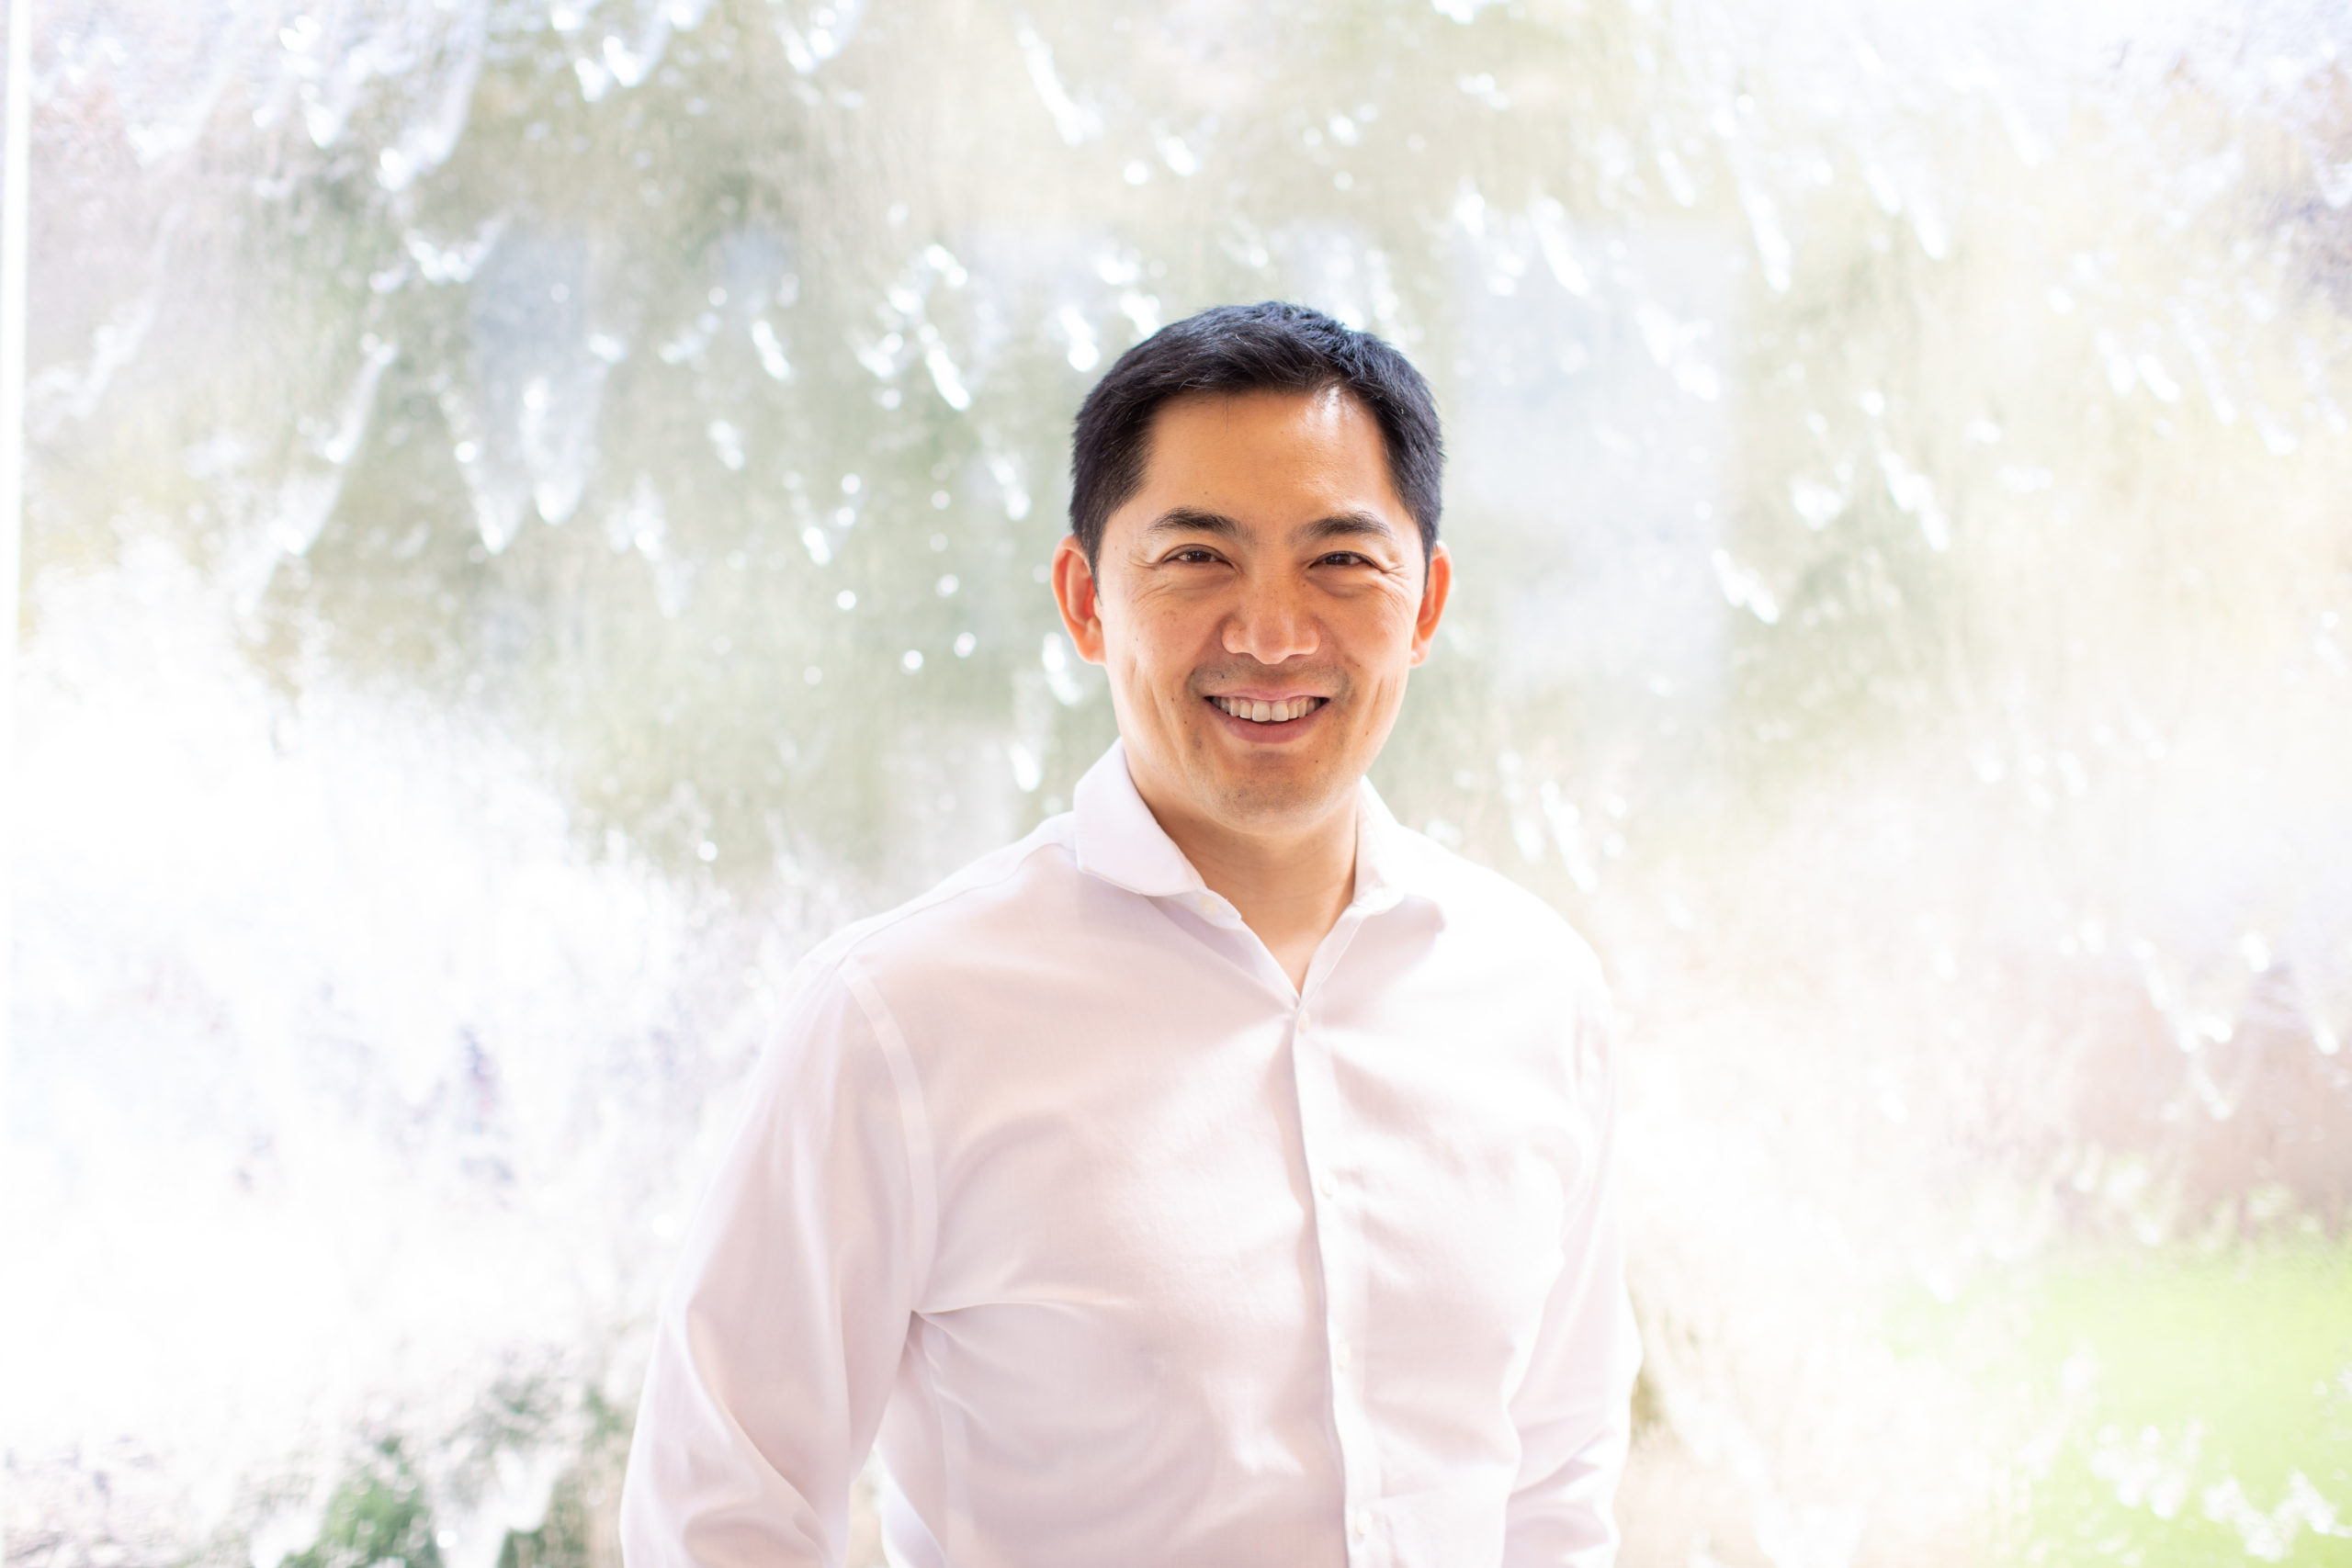 Bet.Works founder and chief executive David Wang